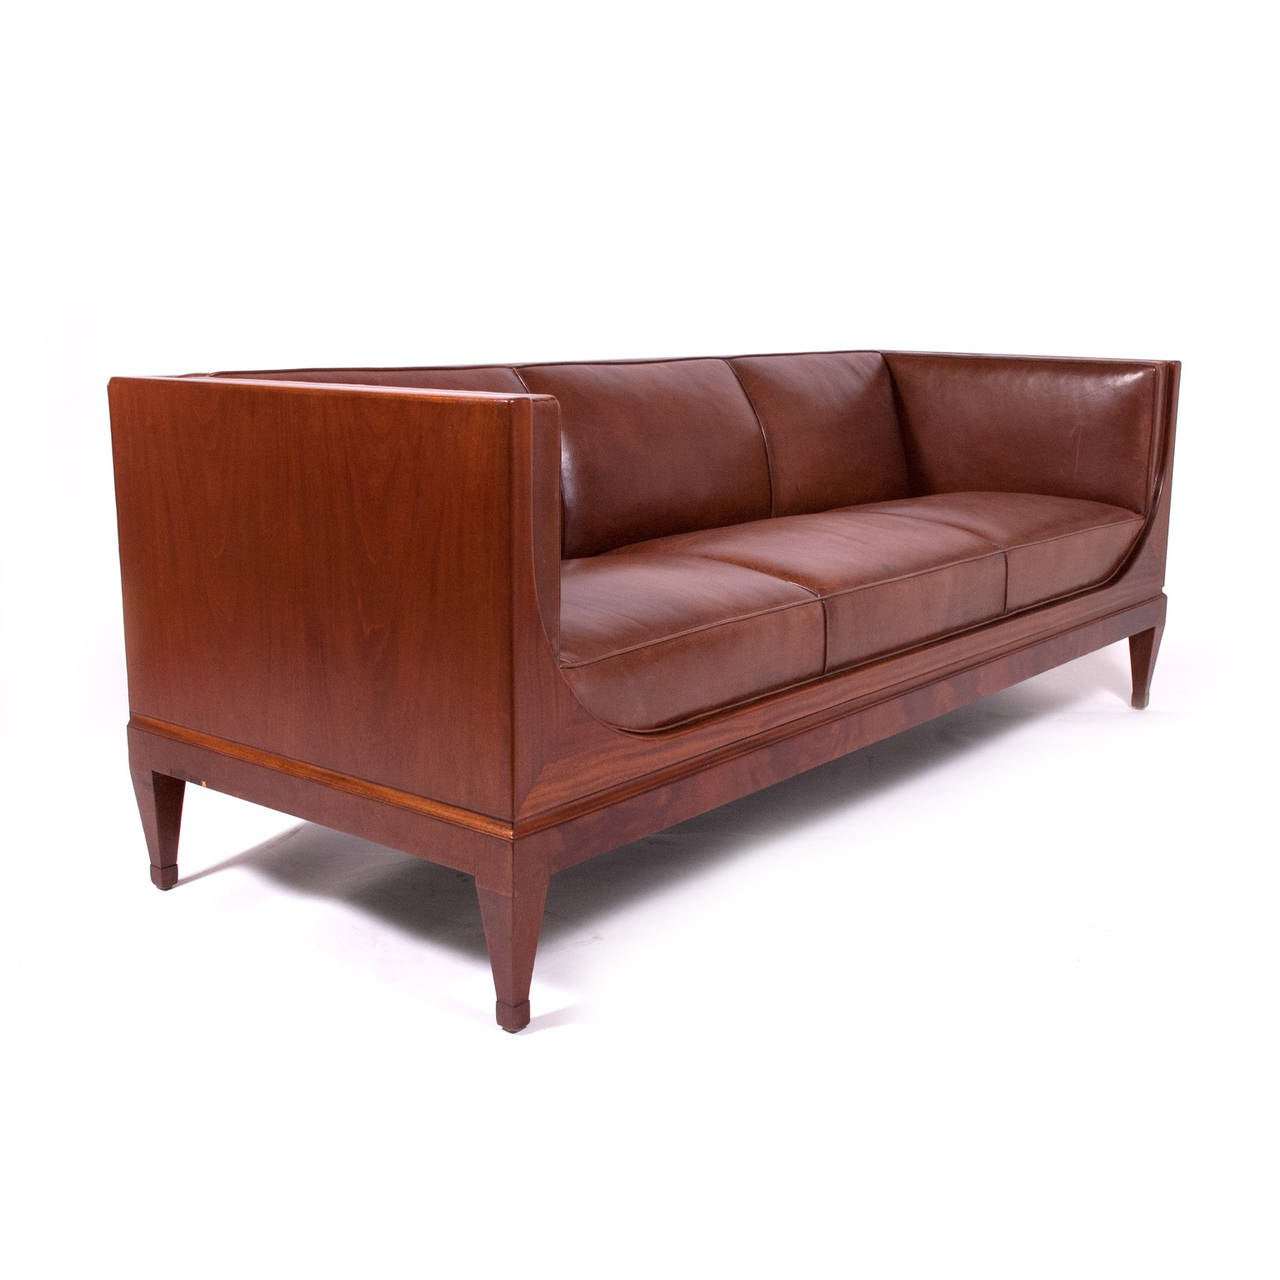 classic sofa by frits henningsen 1930s for sale at 1stdibs